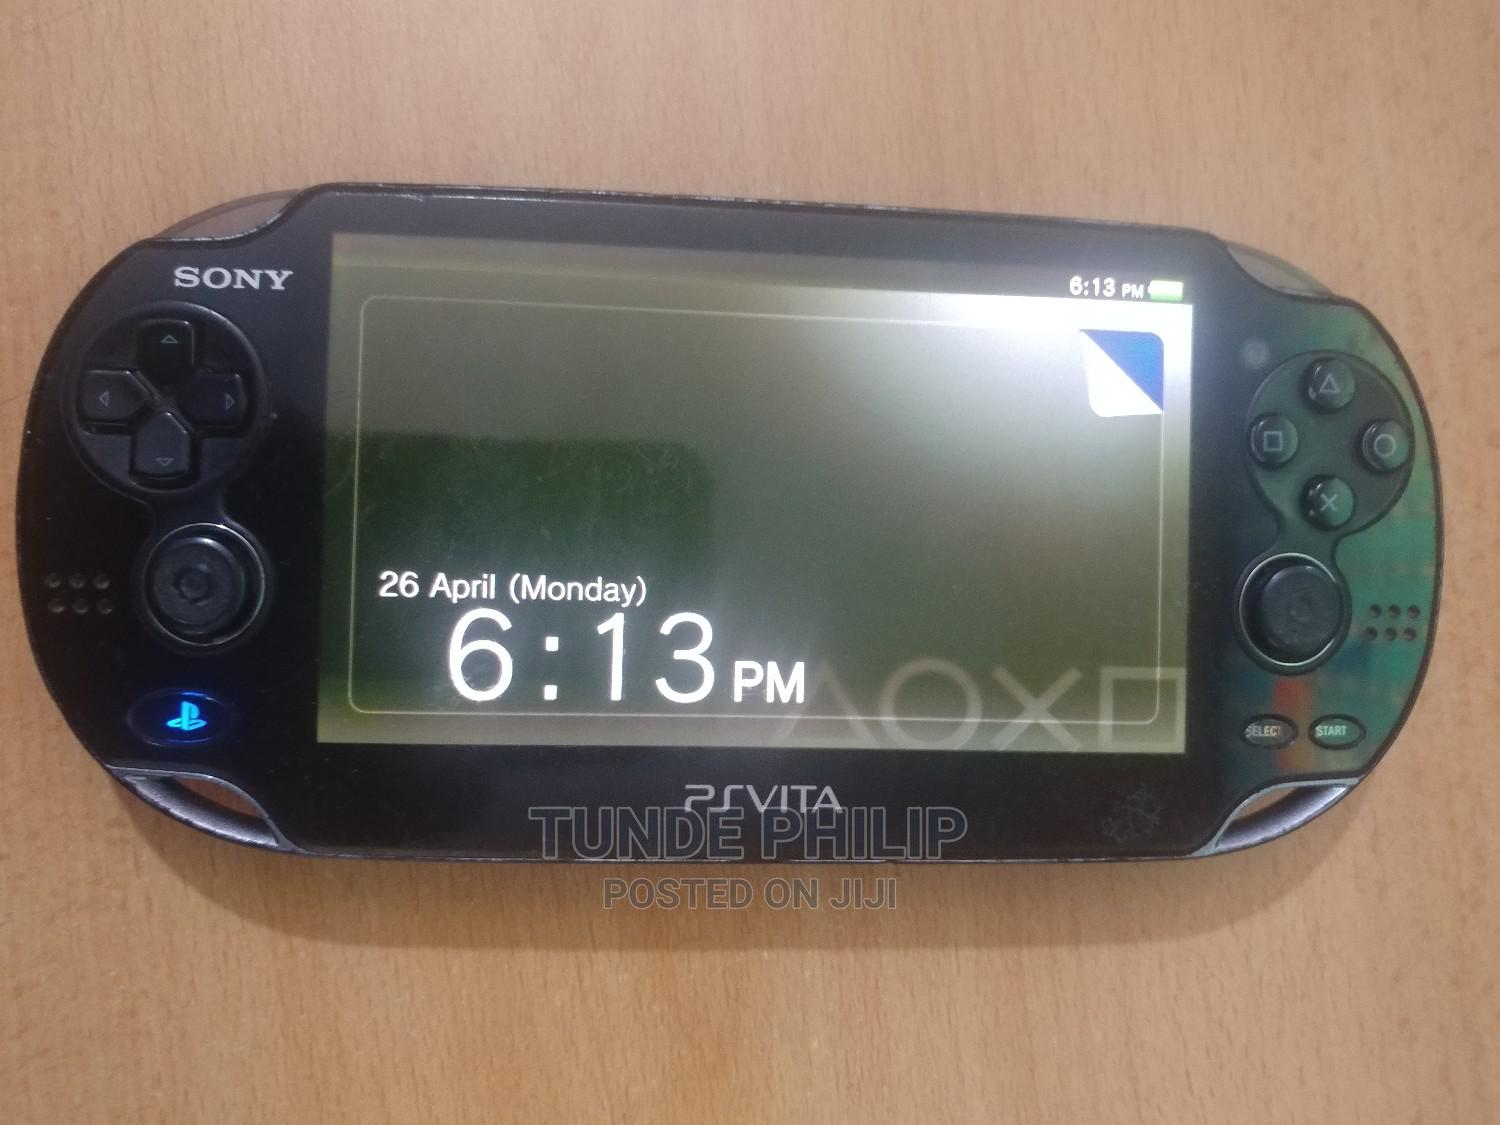 Archive: PS Vita Fat Working Perfectly and Not Hacked